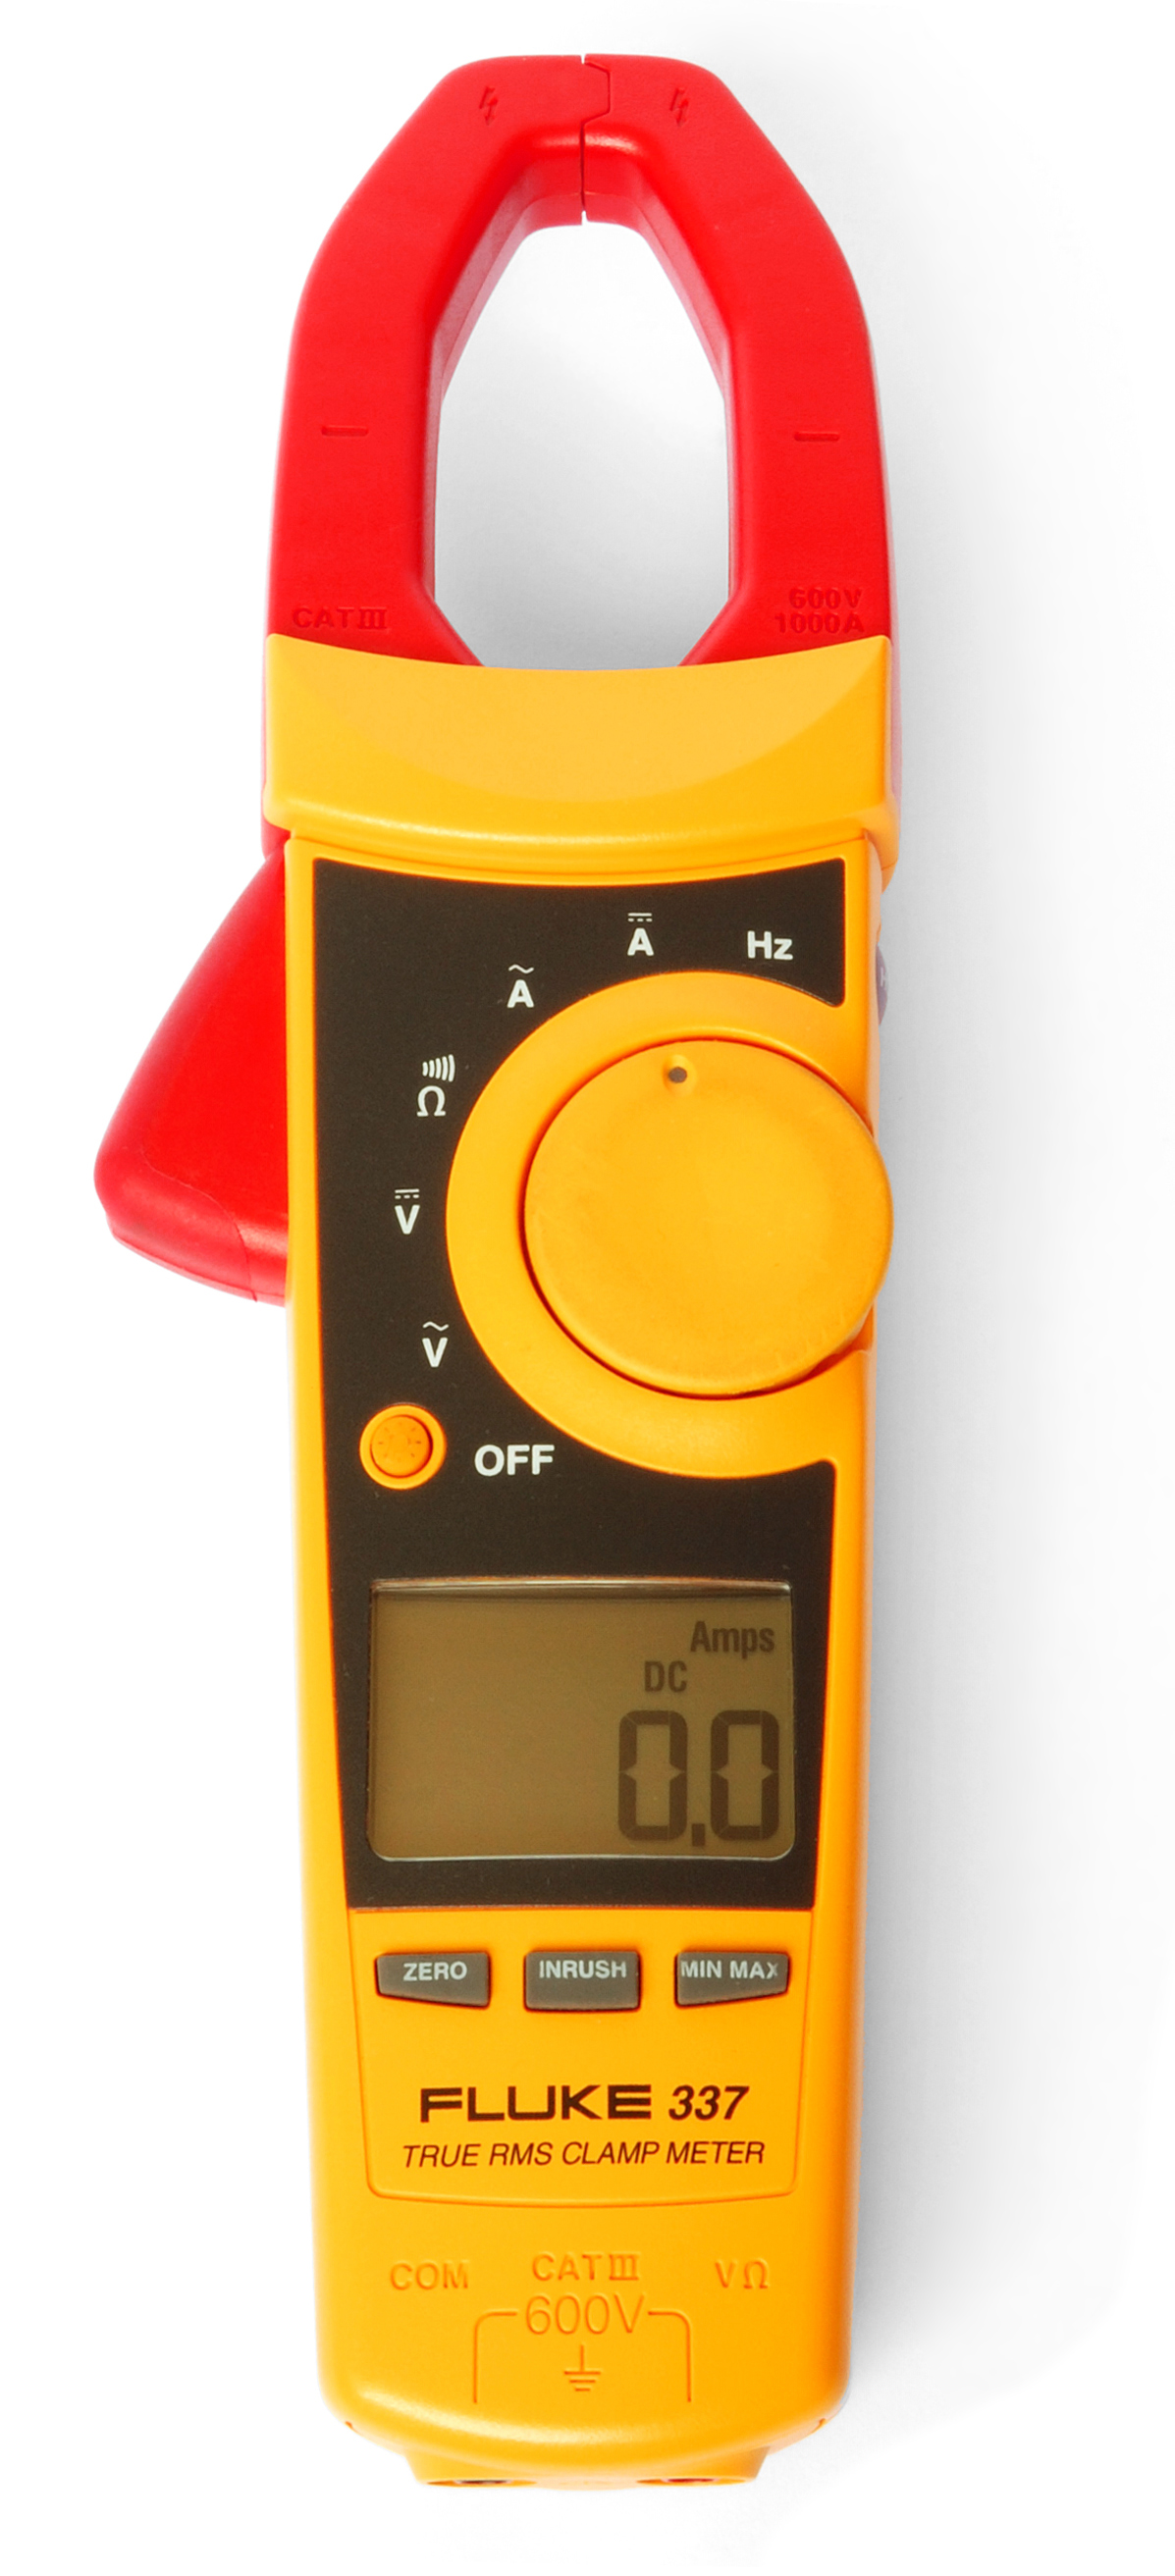 Samsung Gt S5301 Power Button Ways Jumpers also 371009362989 in addition Fluke 123 Fluke 123 003 additionally No Power From Breadboard Power Supply Module likewise 33x Recall. on using a multimeter